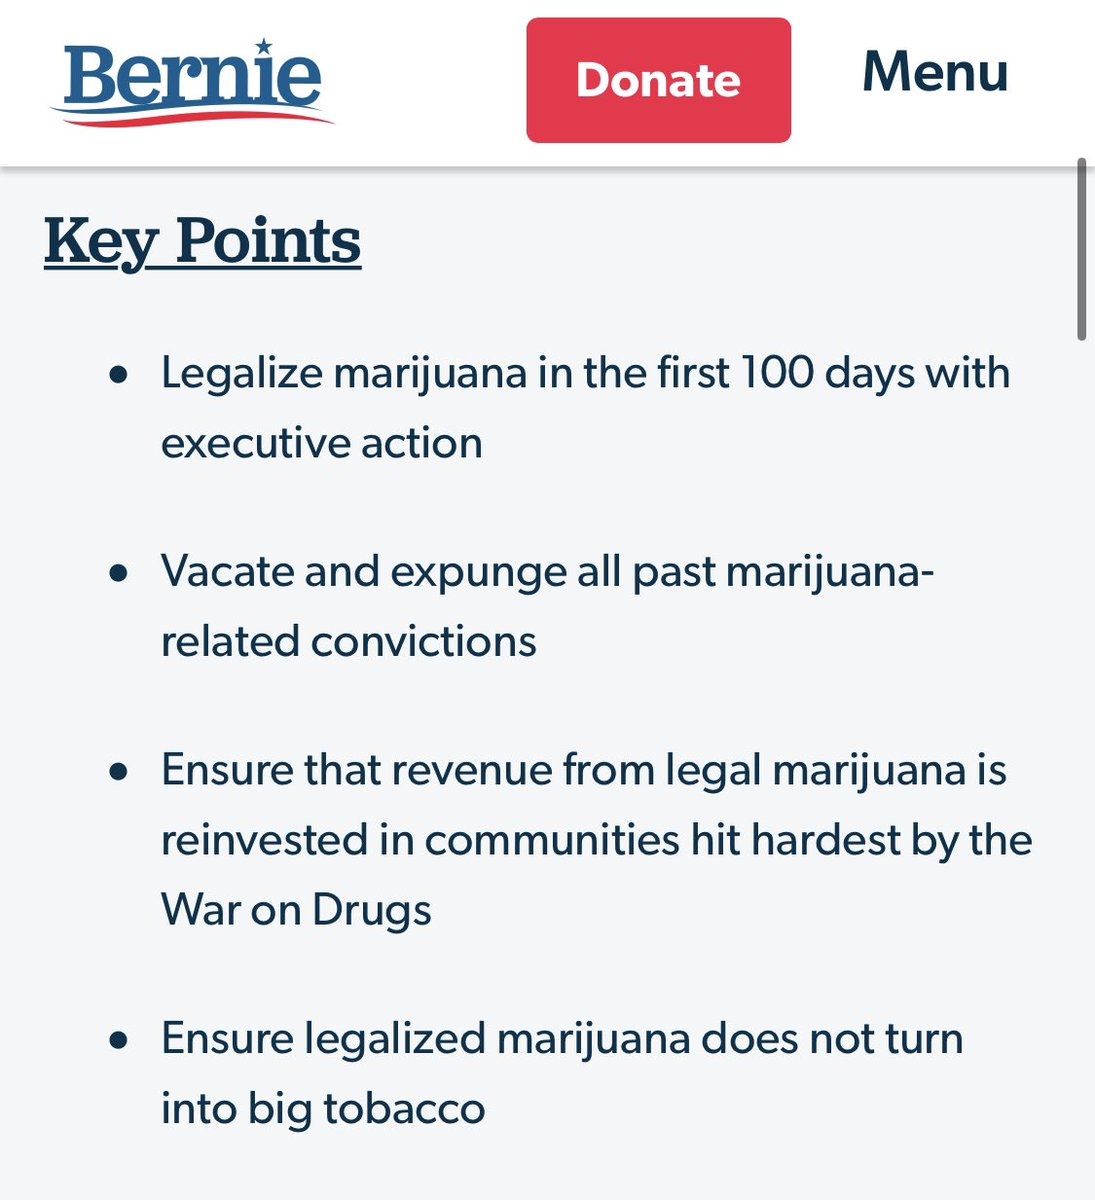 Legalize it.  But also make sure the people who were hurt most by the war on drugs benefit first.   Bernie had a pretty good plan. https://t.co/zlmxkXQSFc https://t.co/3SElSM2T98